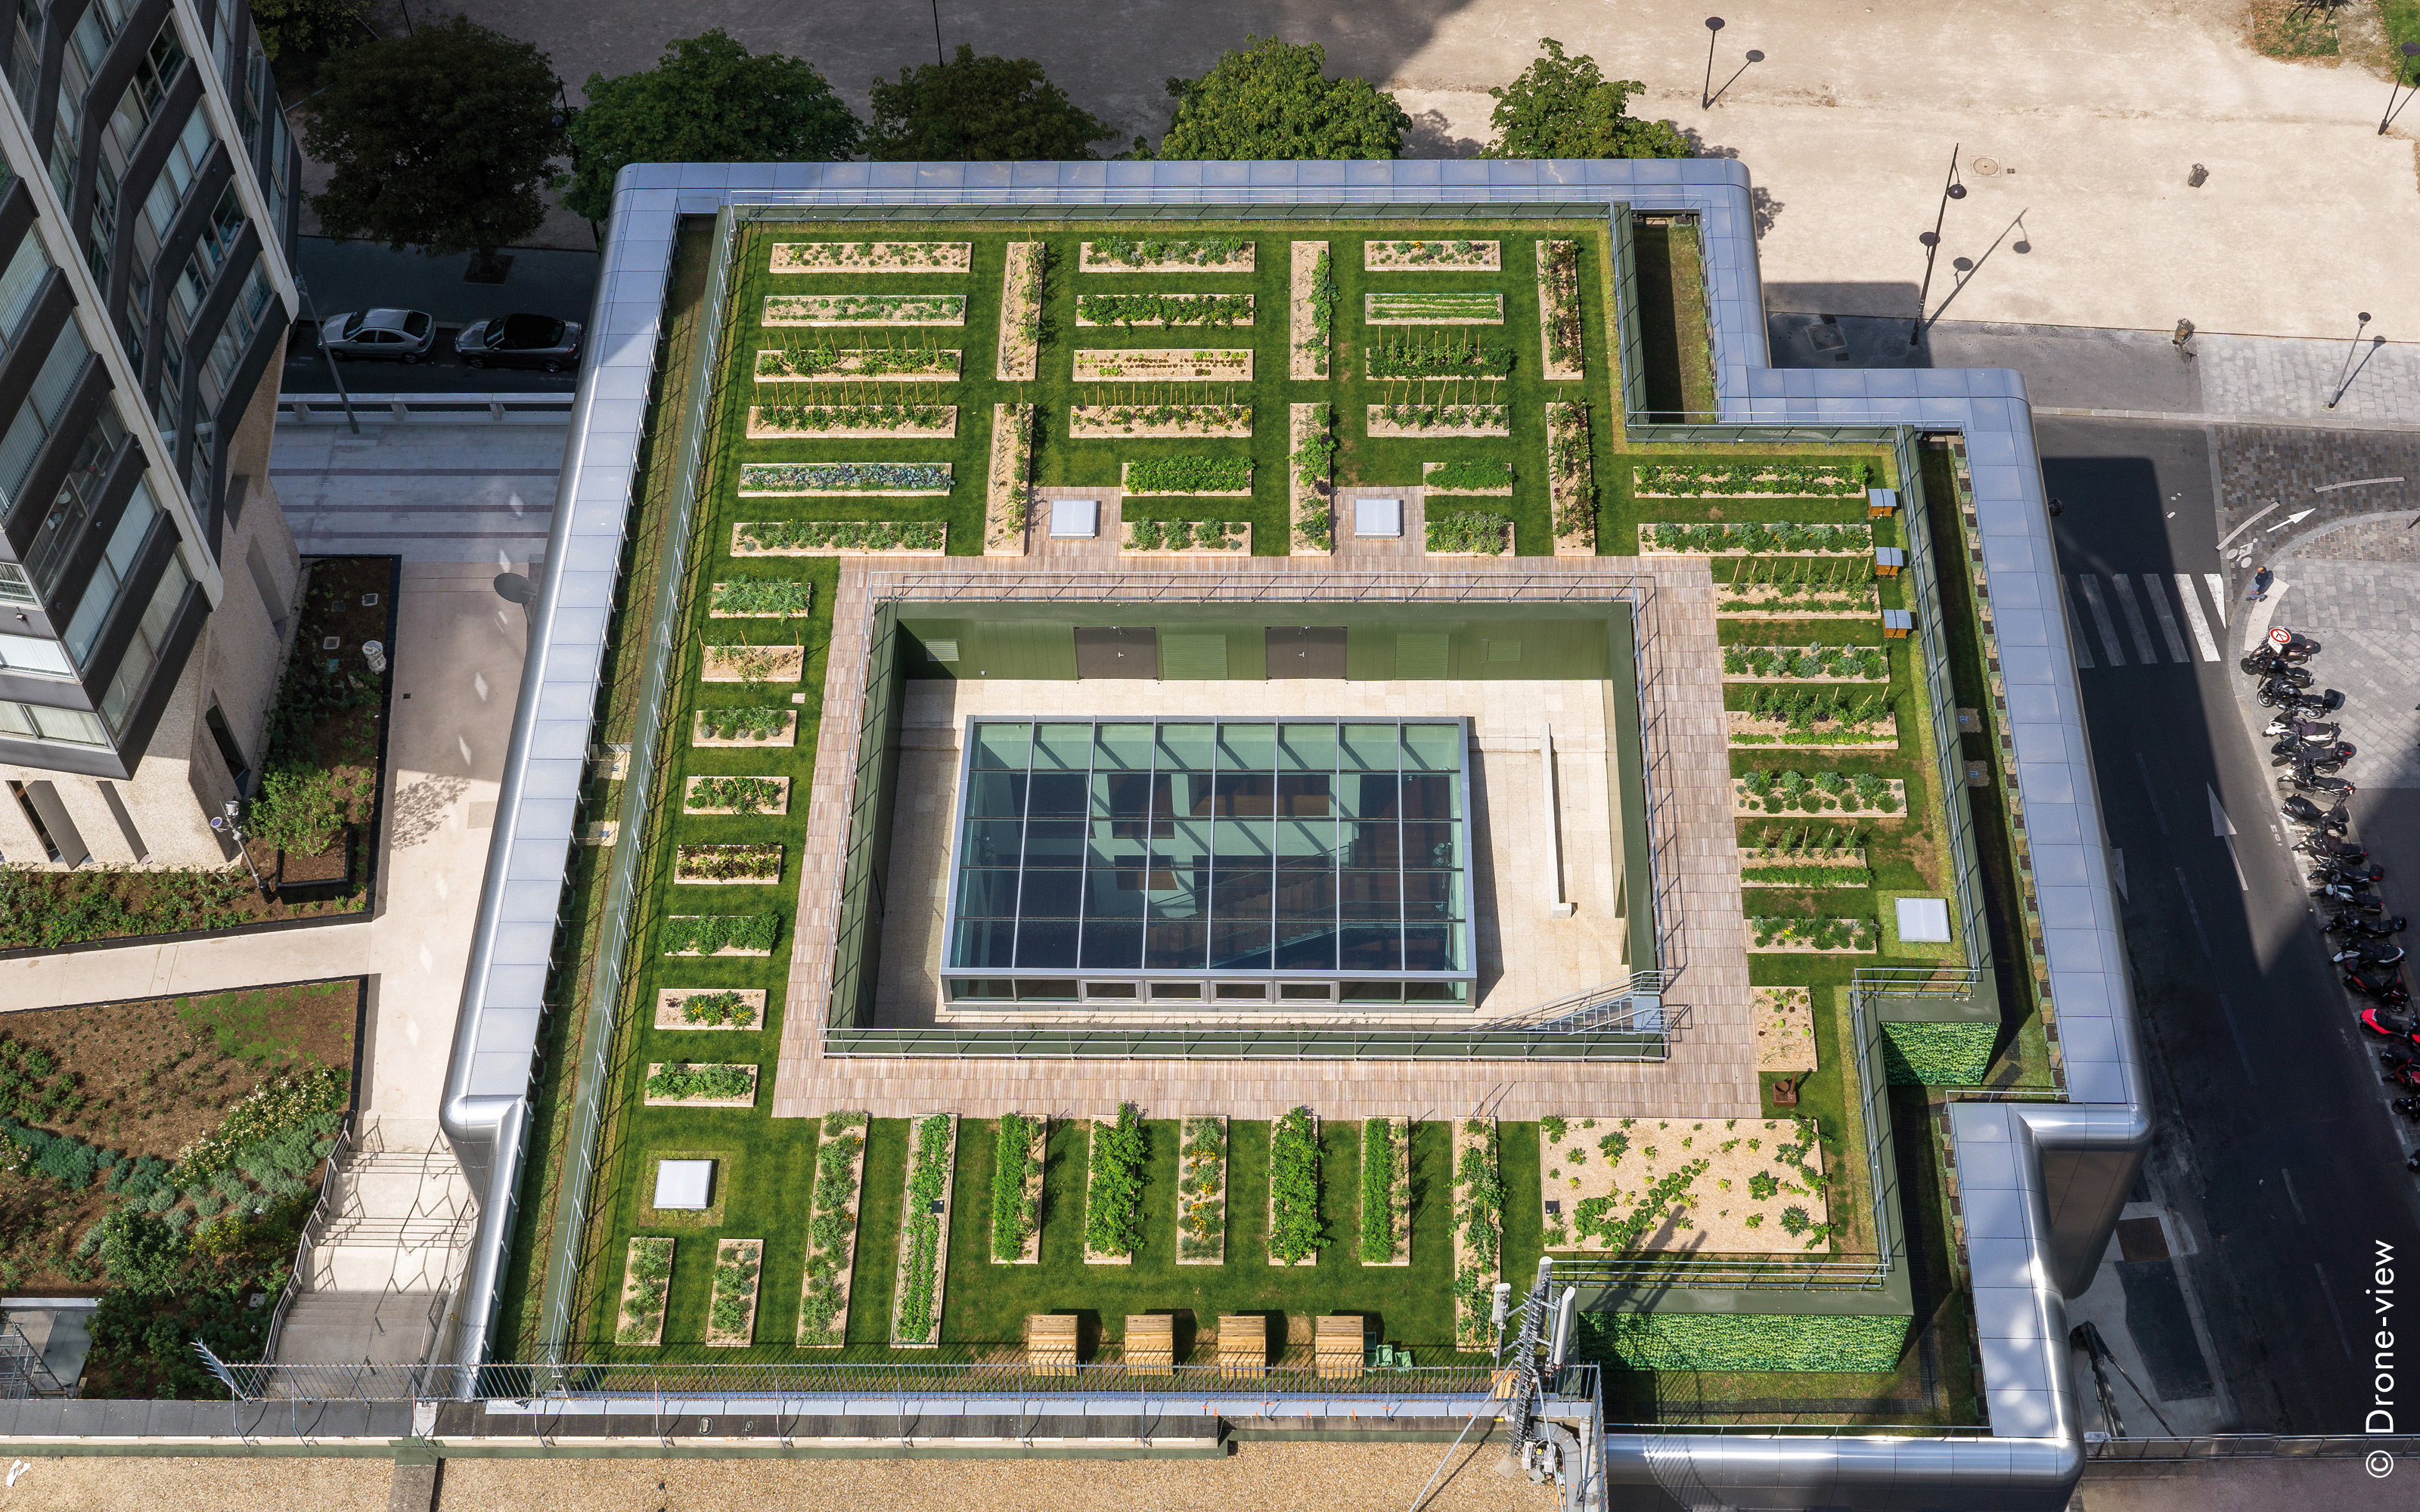 Bird's eye view of a green roof with vegetable plant beds